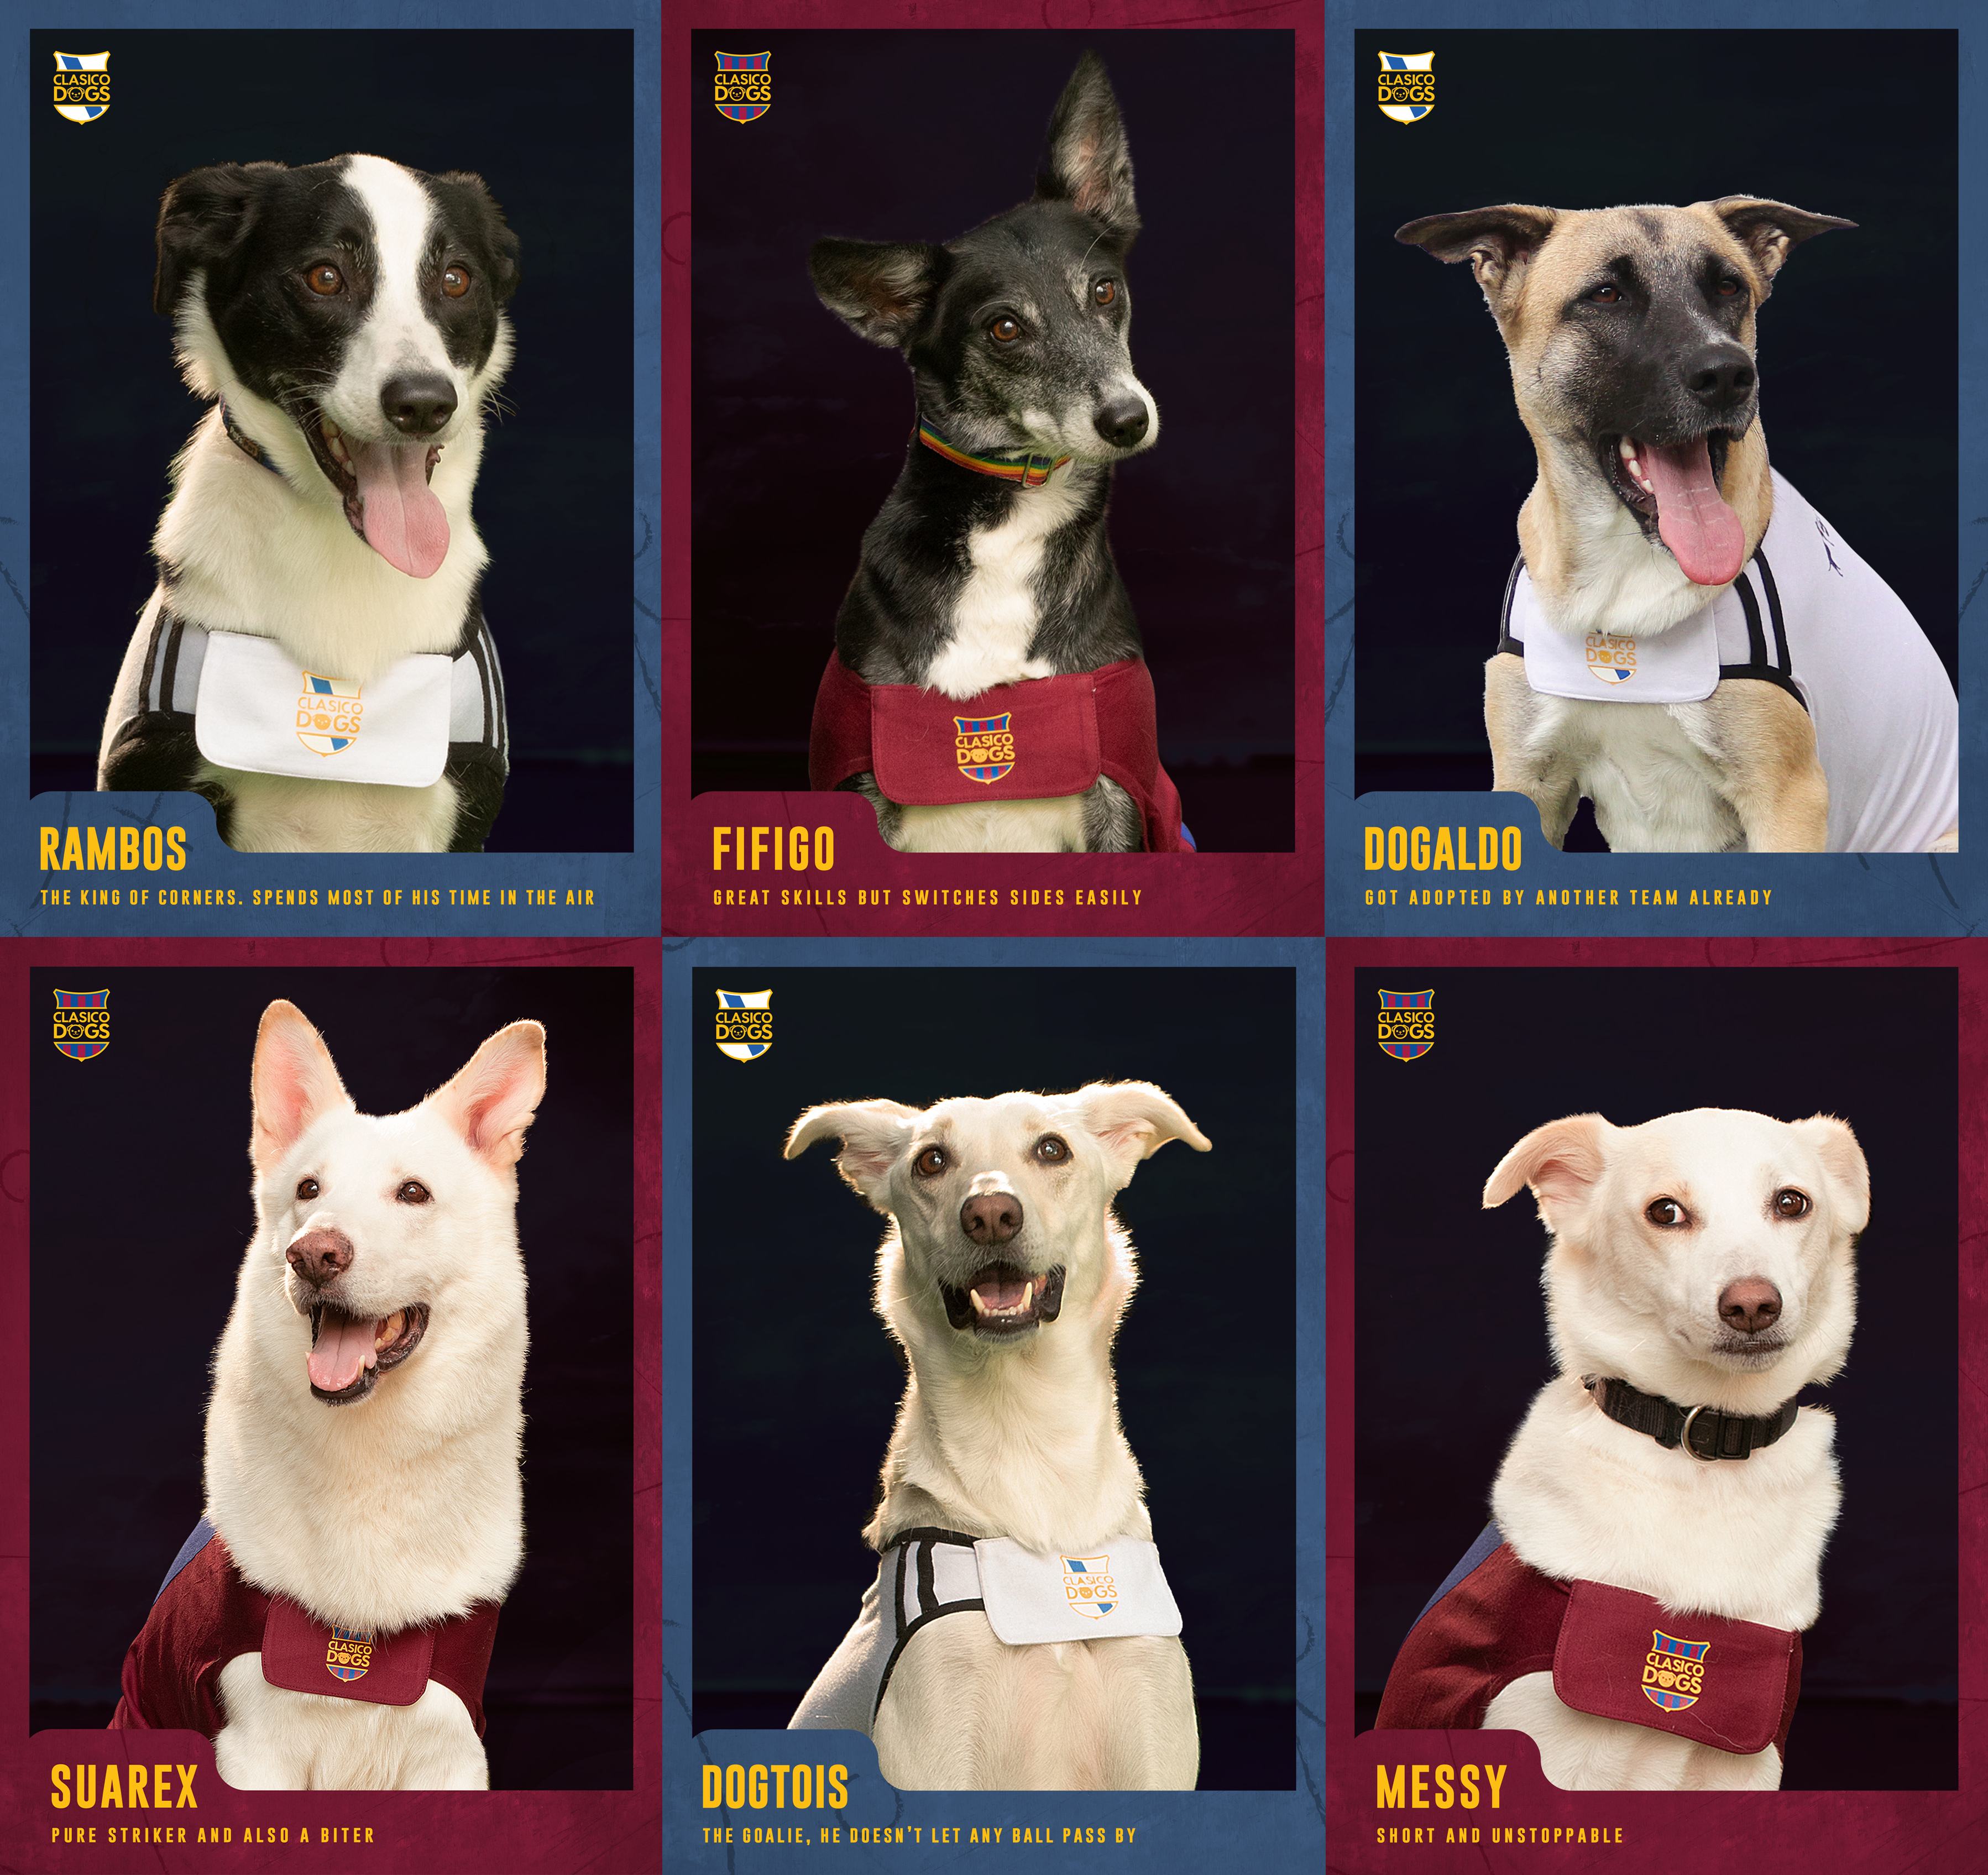 Six dogs dressed as football players